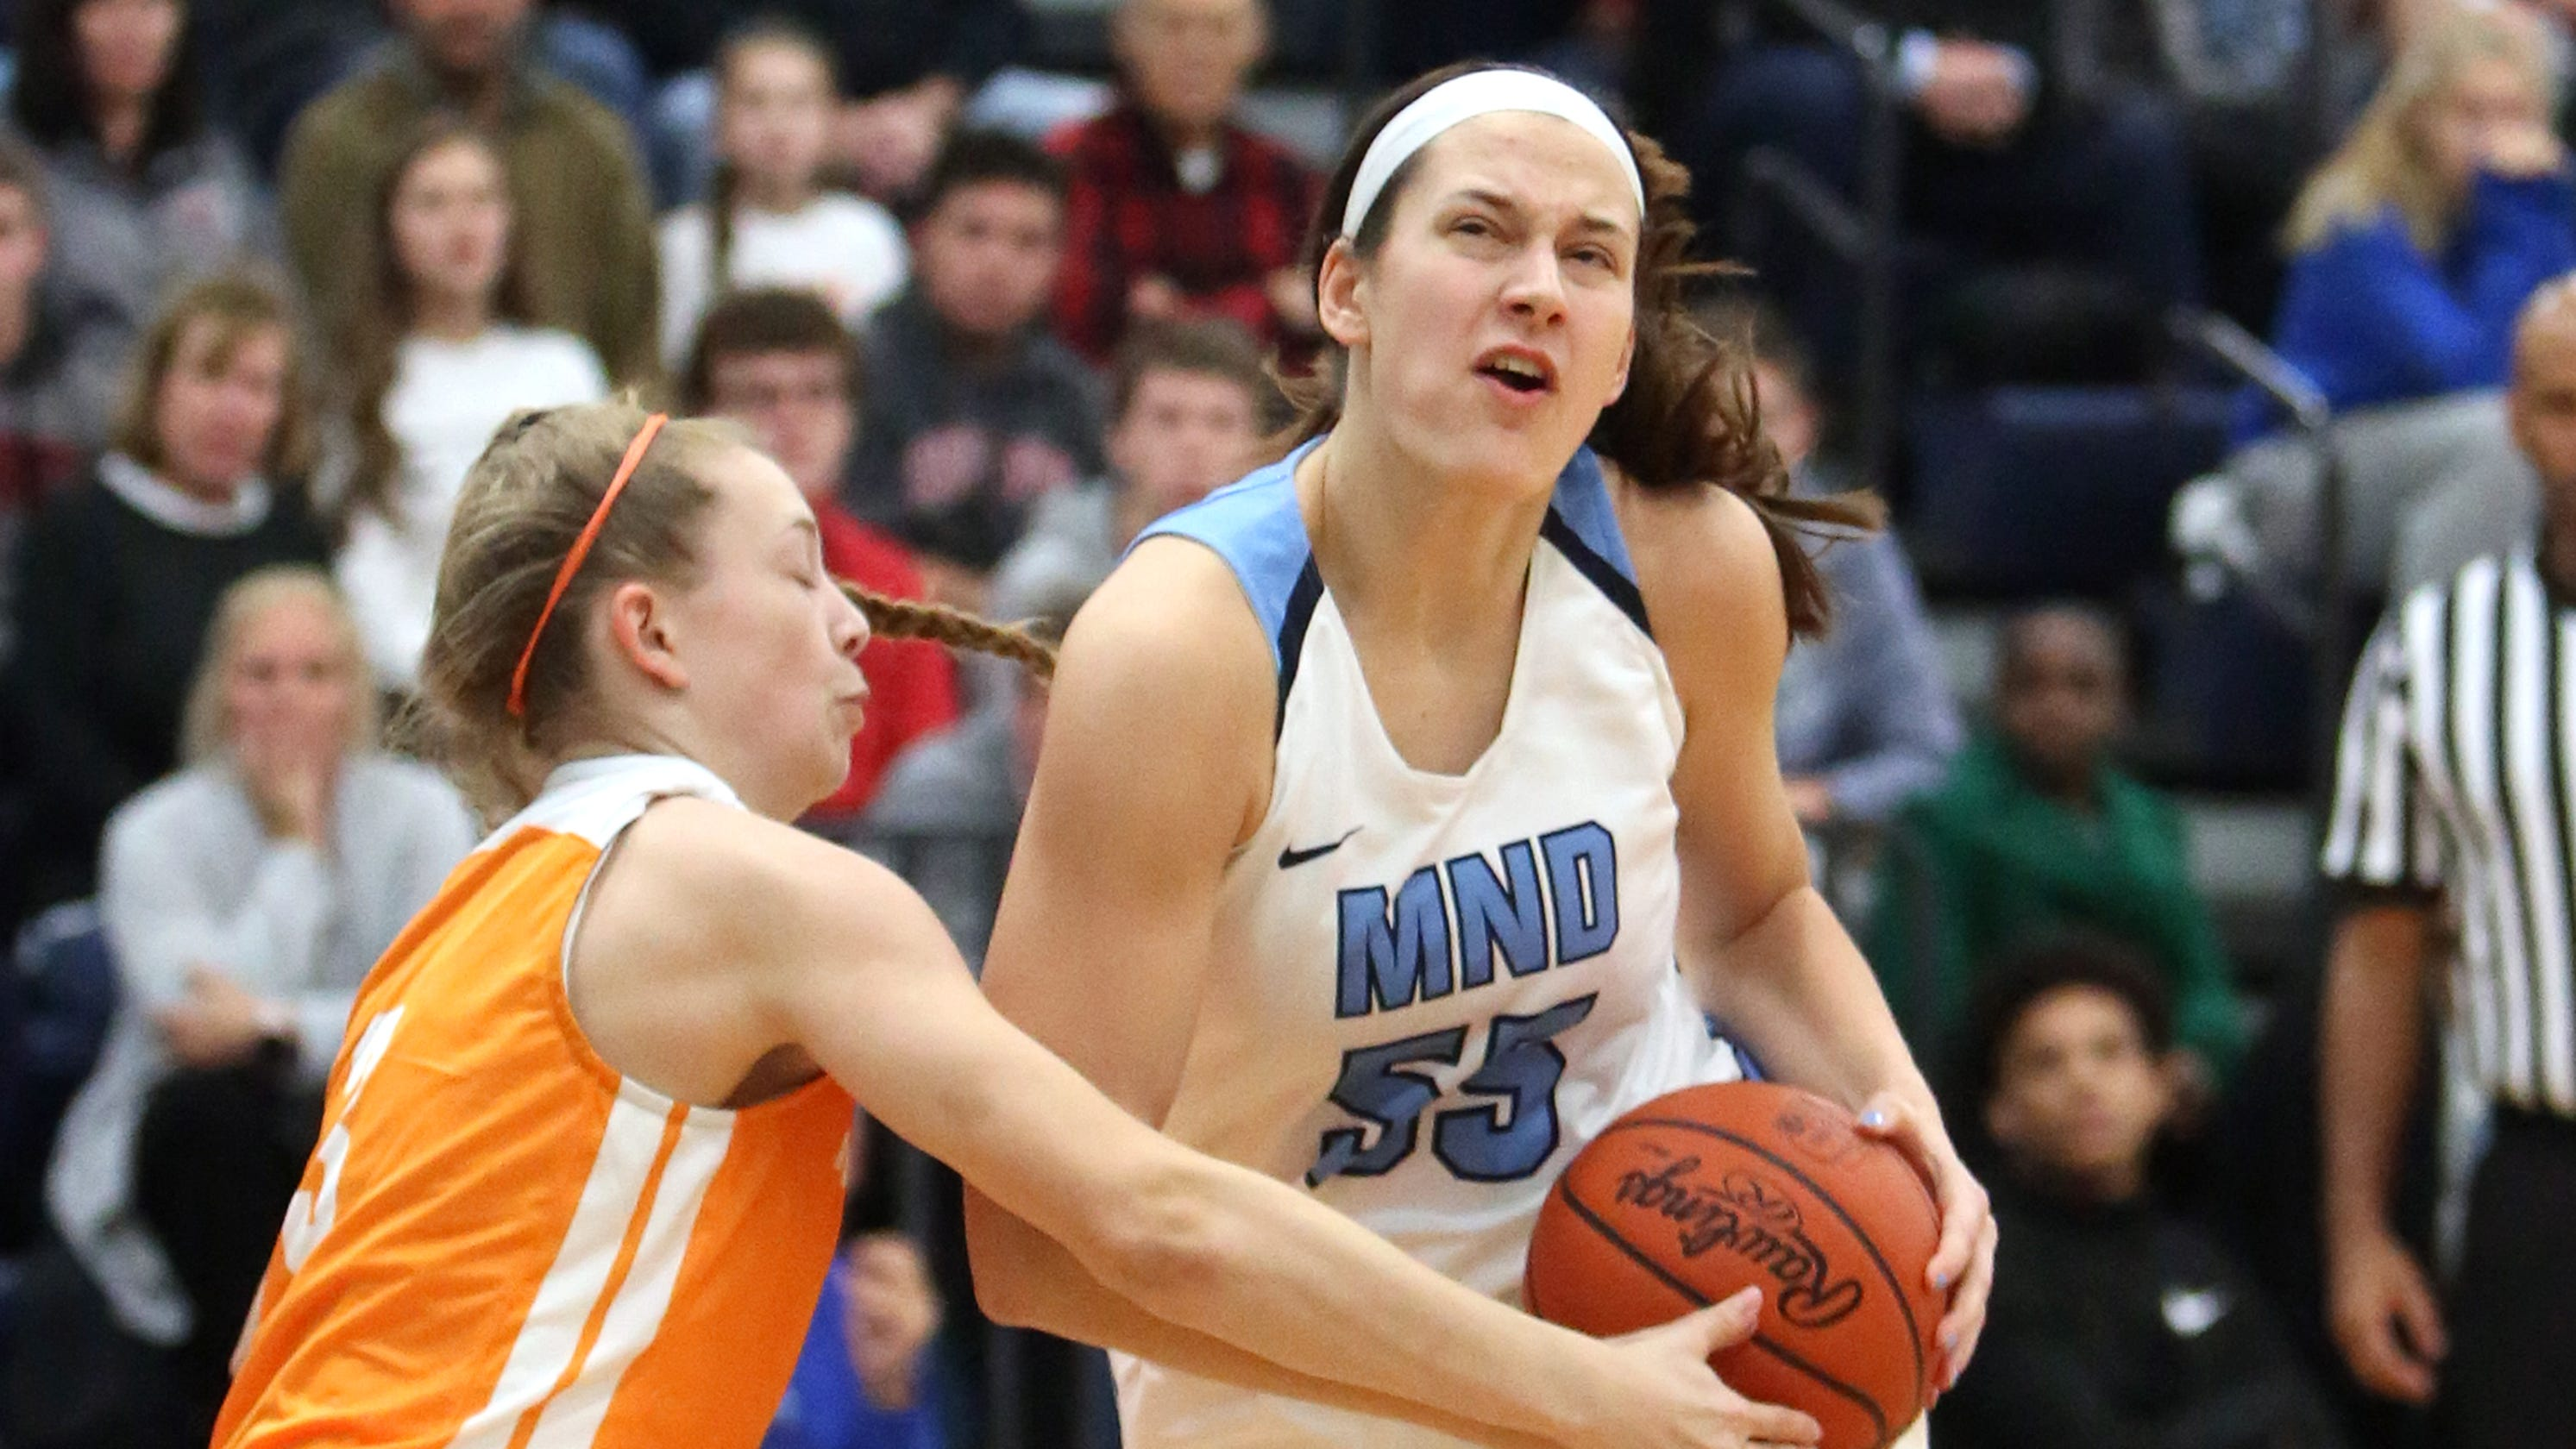 Photos mercy mcauley v mount notre dame basketball dec 6 for Mount mercy email